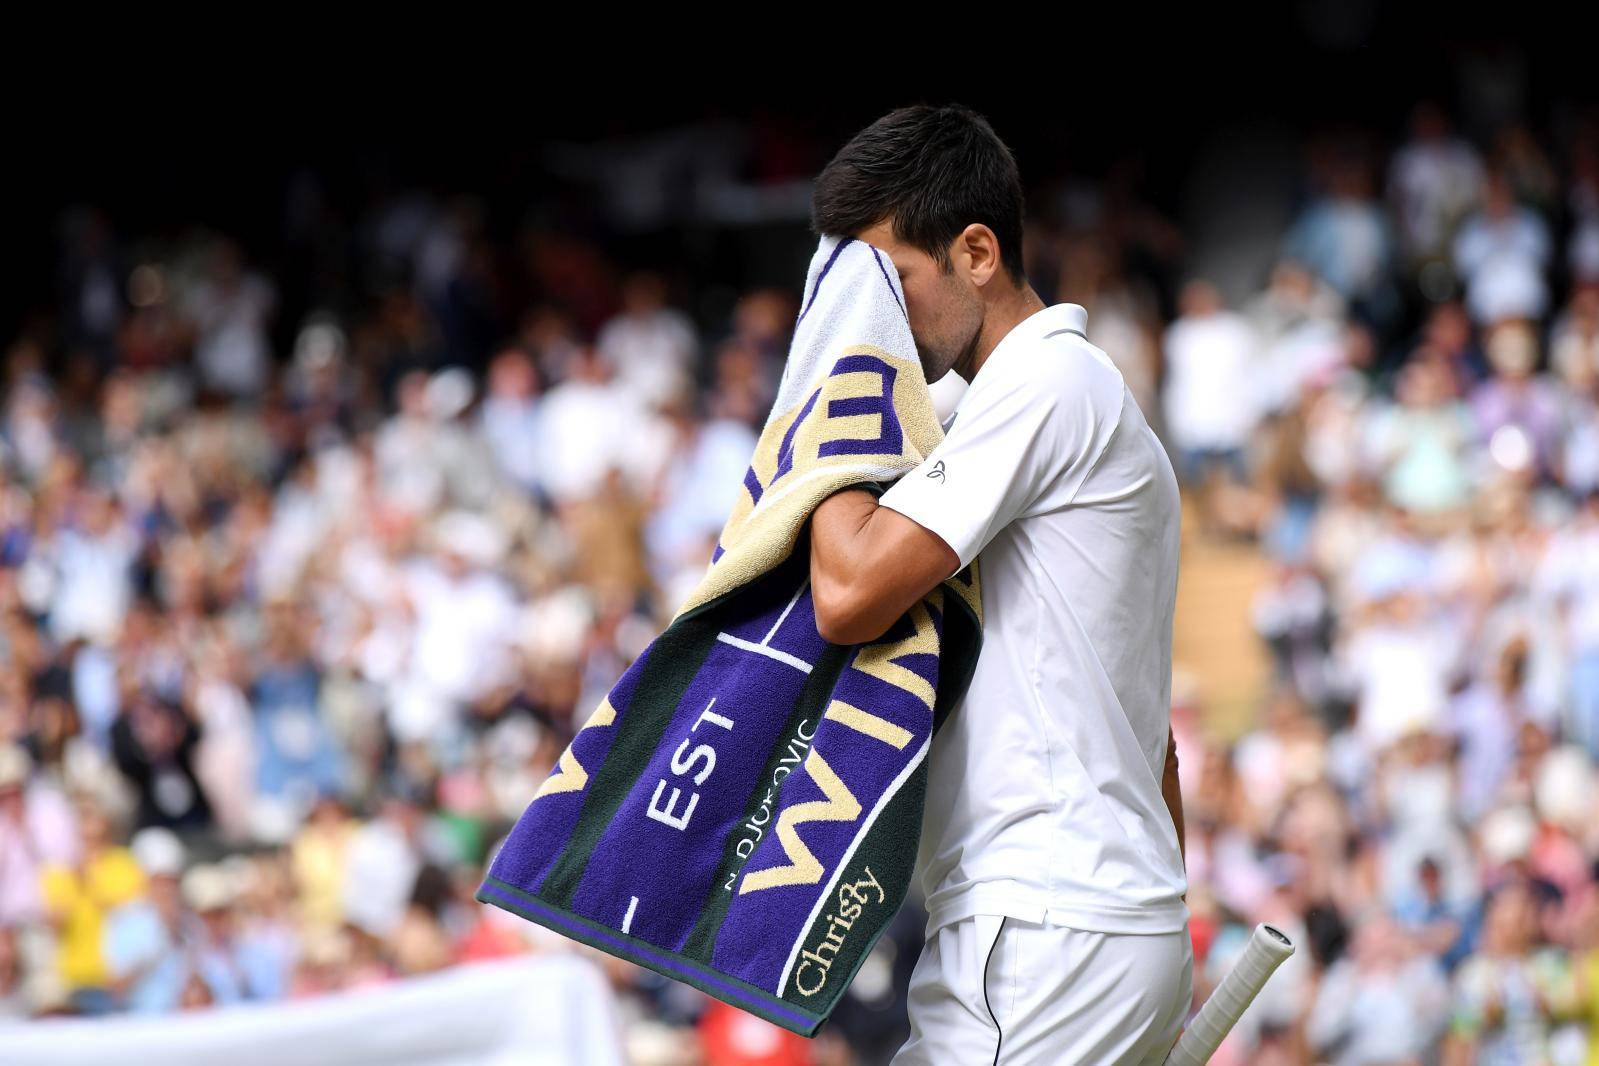 Wimbledon 2019 - Day Thirteen - The All England Lawn Tennis and Croquet Club